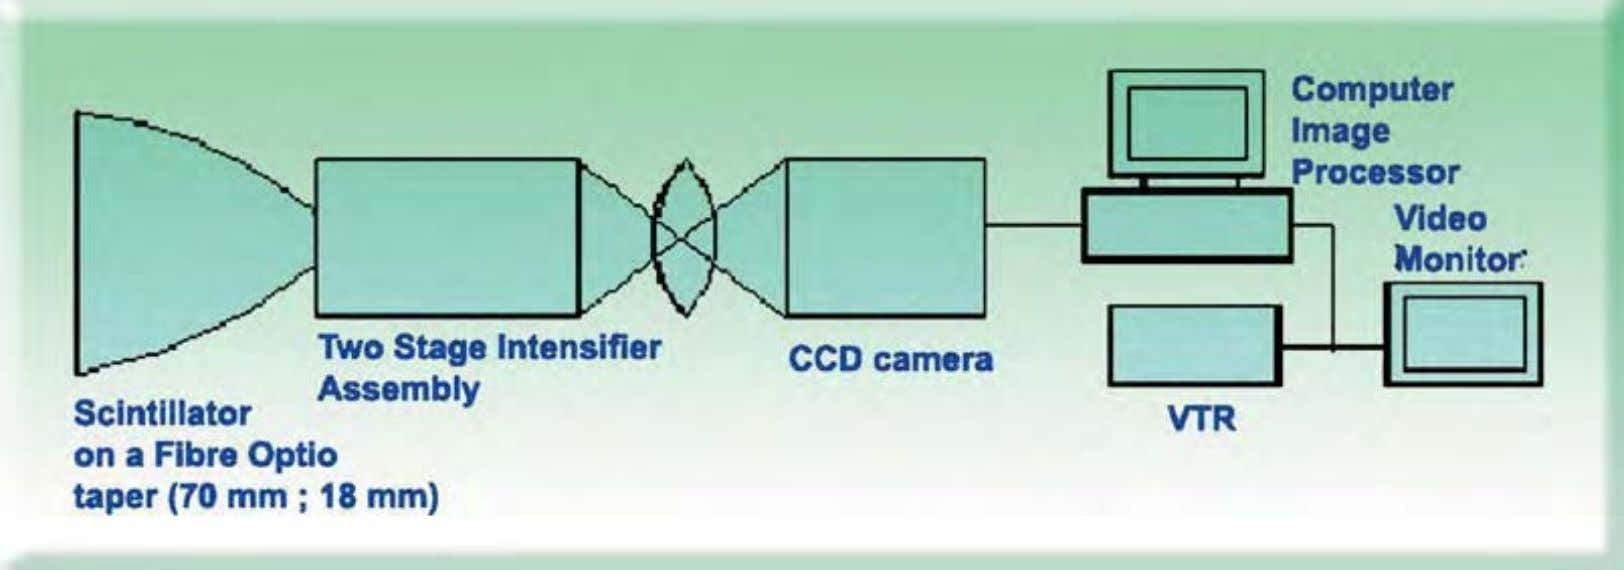 Fig. 12 : Schematic diagram of ICCD-based area detector for onl ine diffraction imaging Charlie Chong/